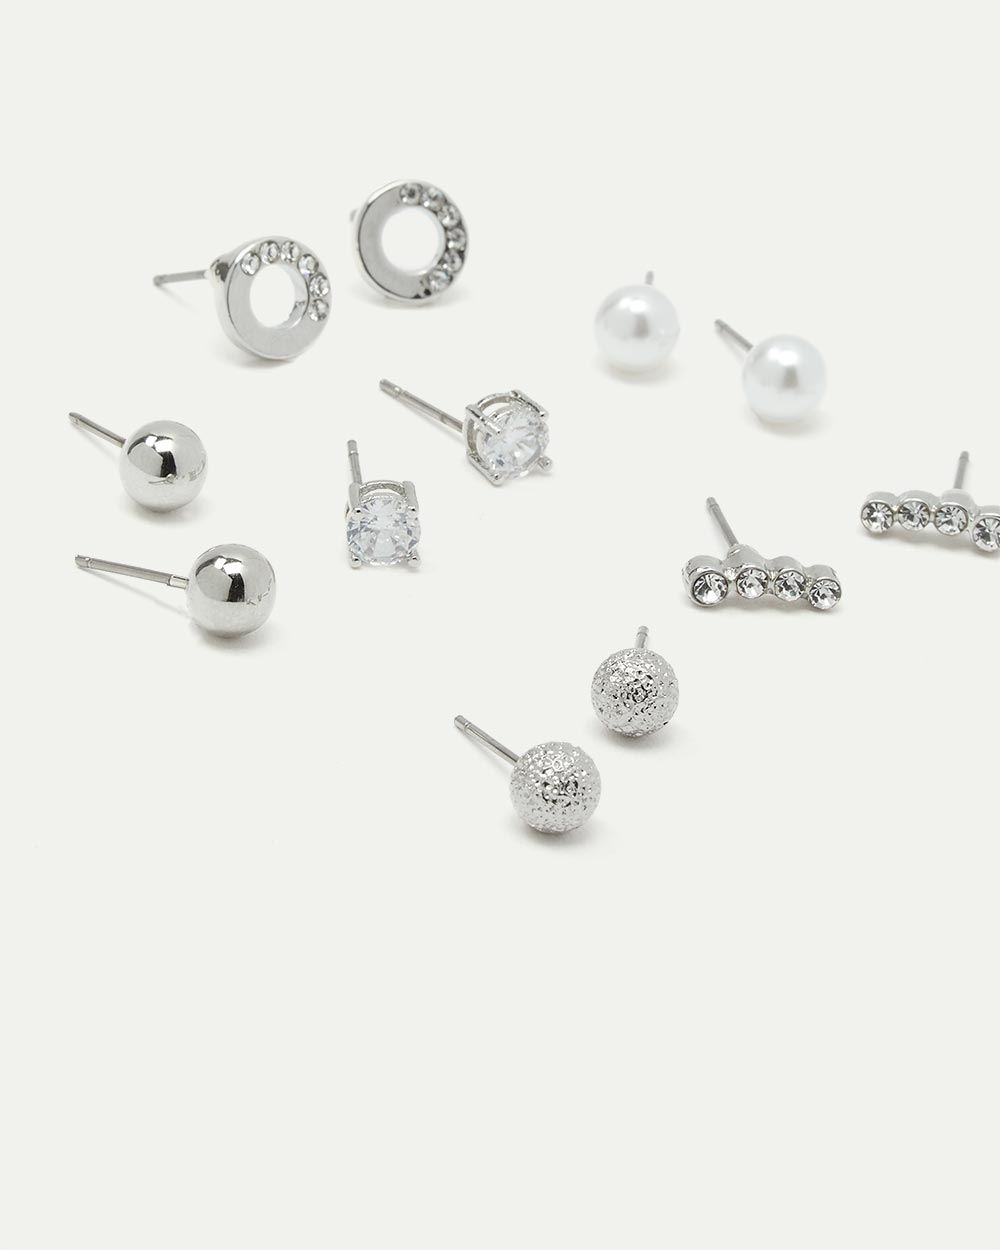 6-Pack Rhinestone Stud Earrings